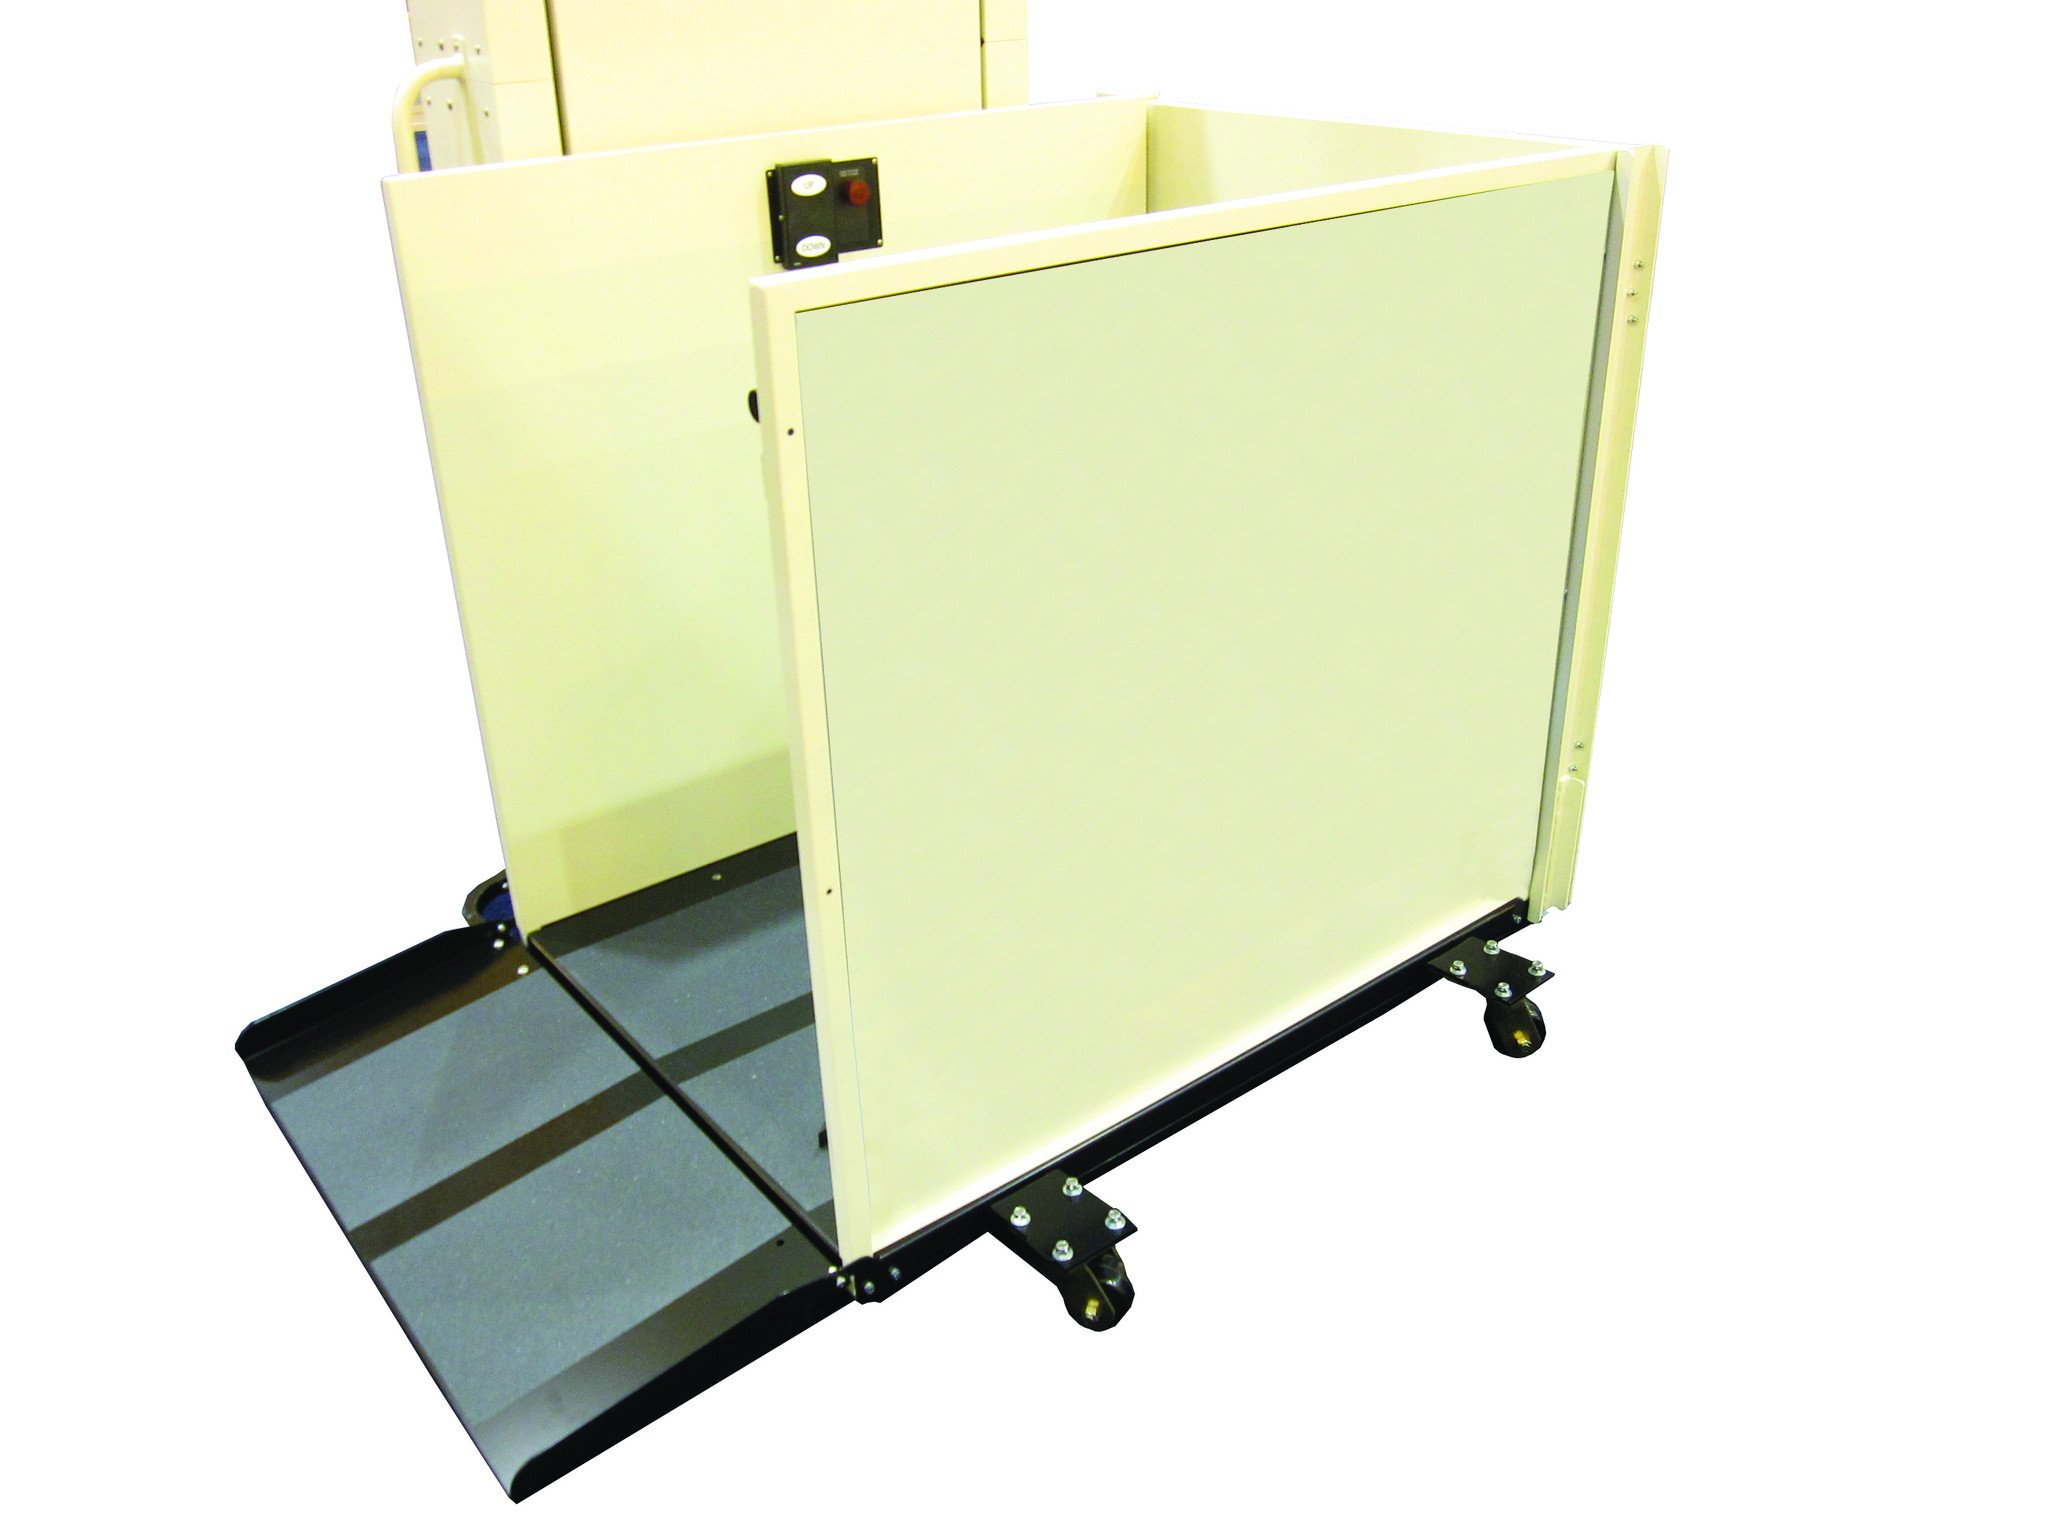 Vertical Platform Lift: CPL400P Portable CPL400P 750 lbs Capacity (Commercial Elevator, Home Elevator)